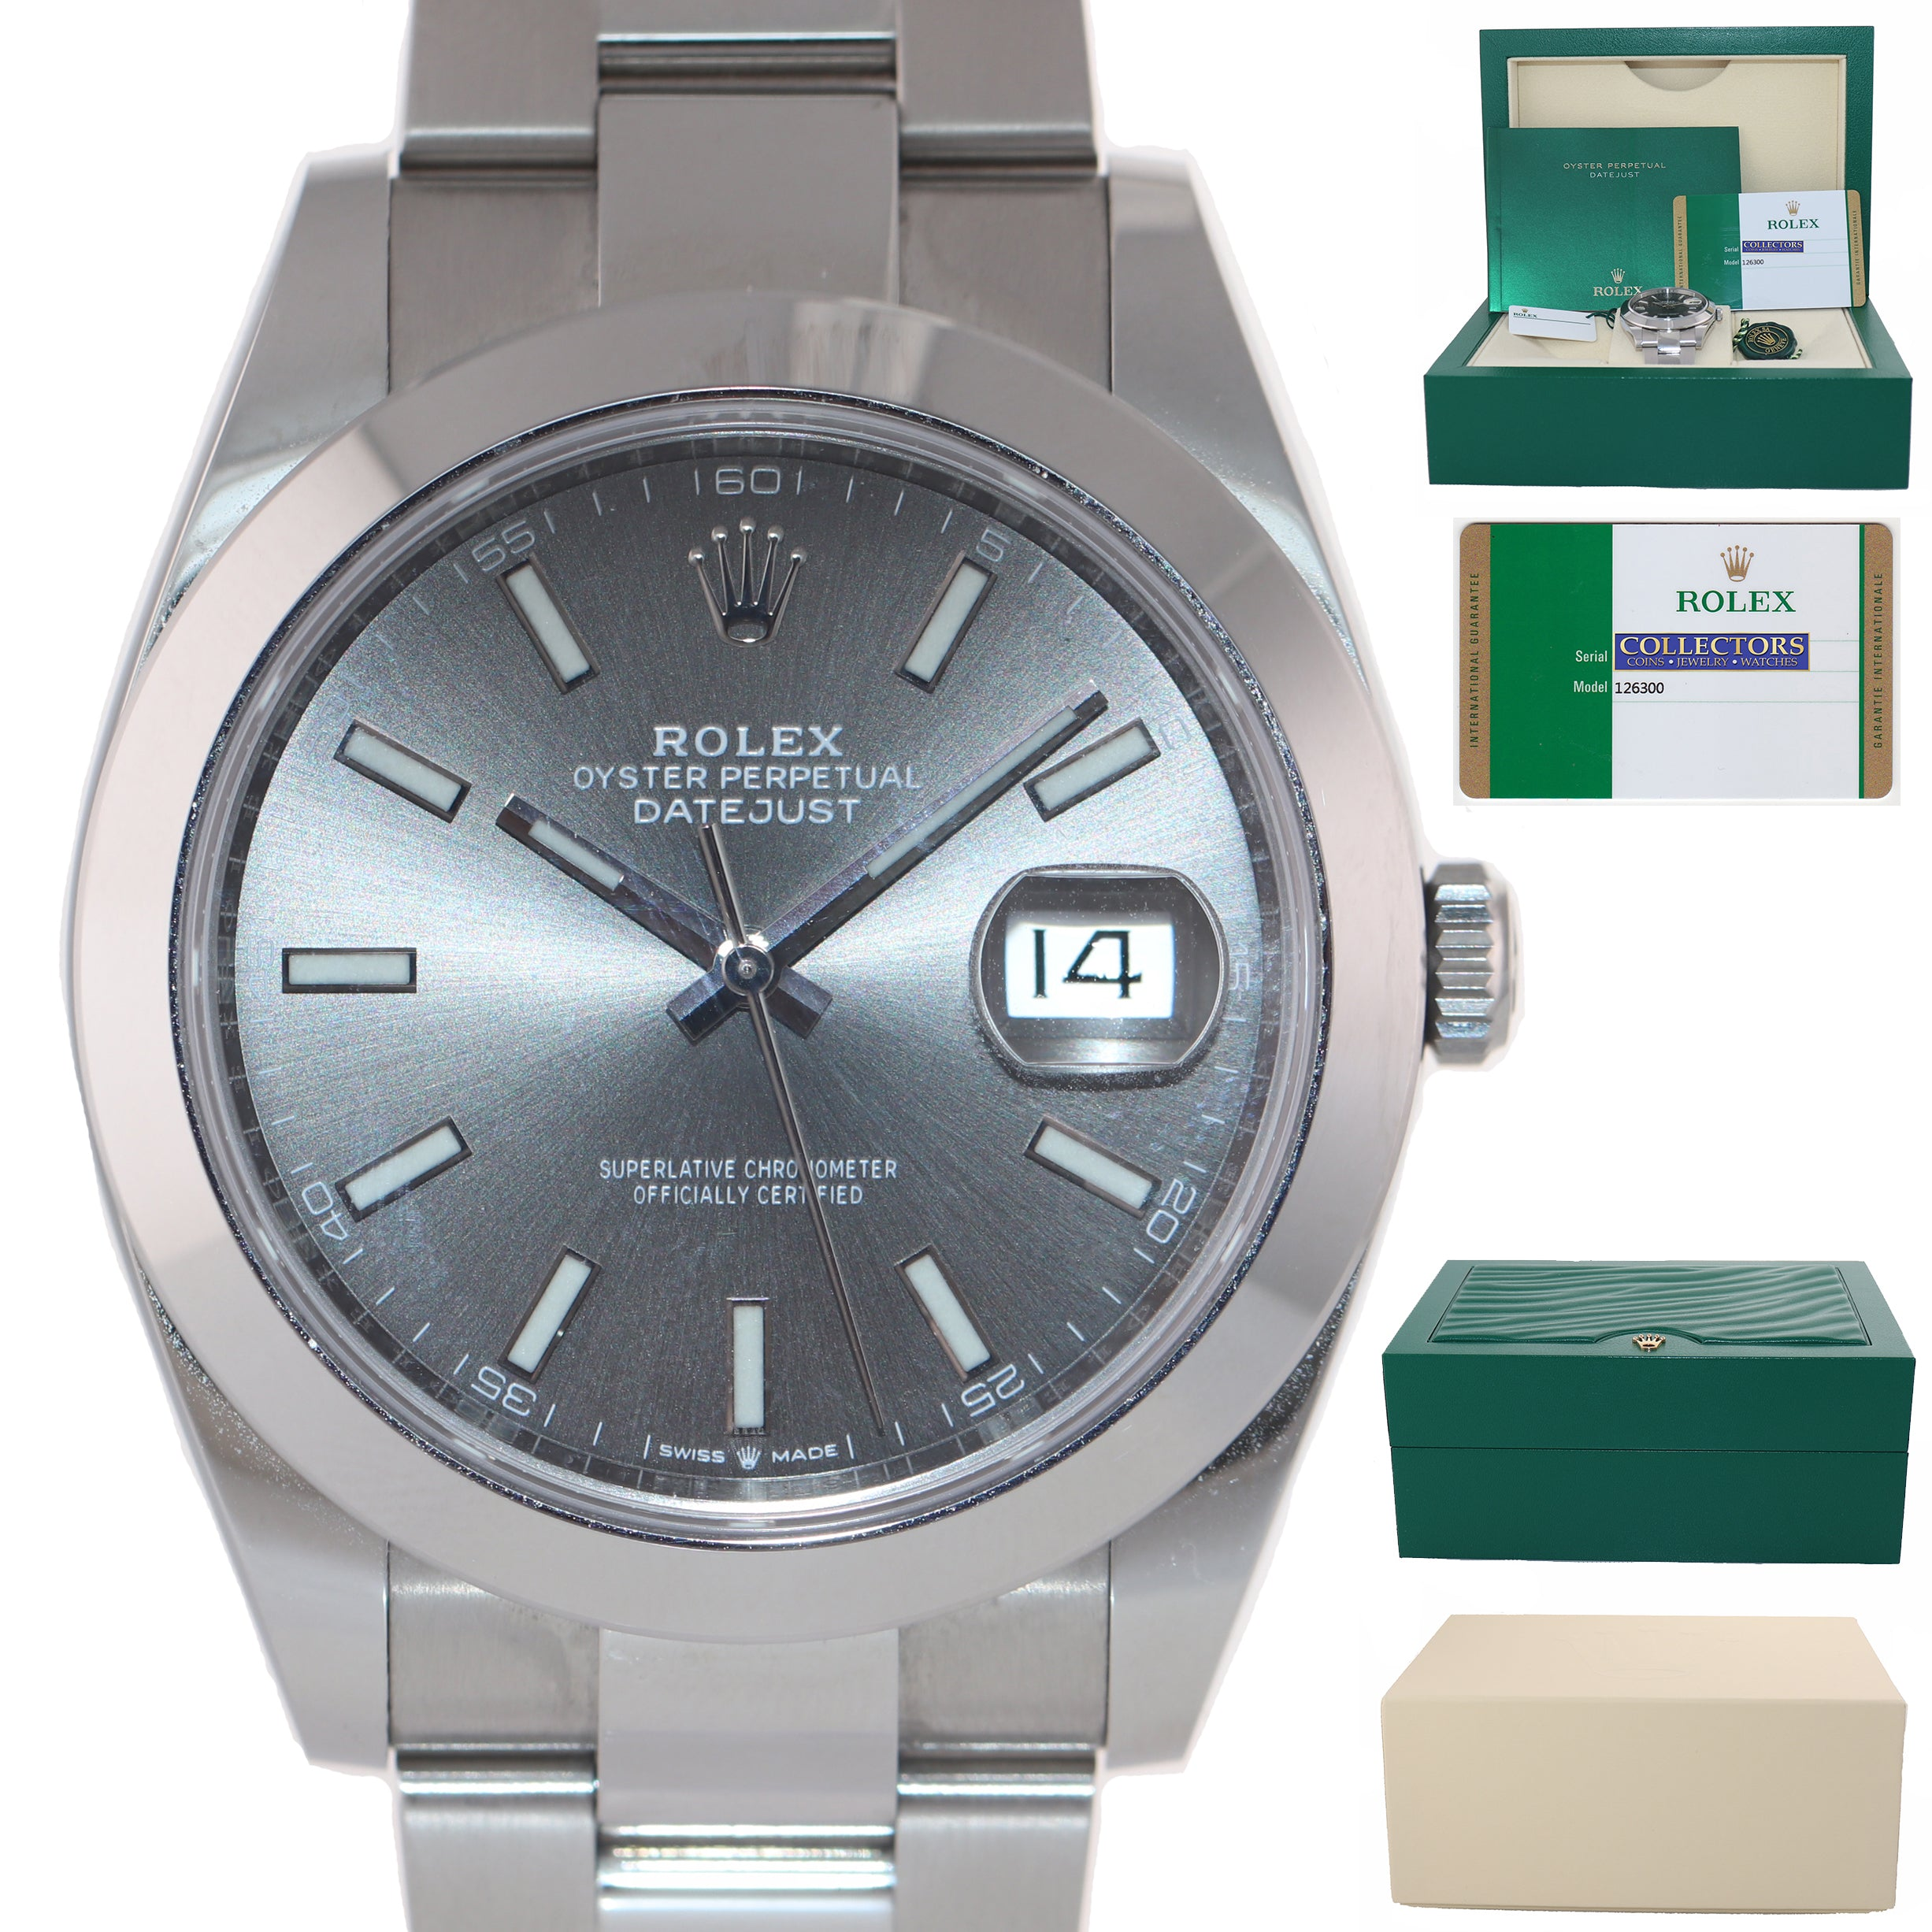 STICKERS 2020 PAPERS Rolex DateJust 41 Steel 126300 Rhodium Oyster Watch Box